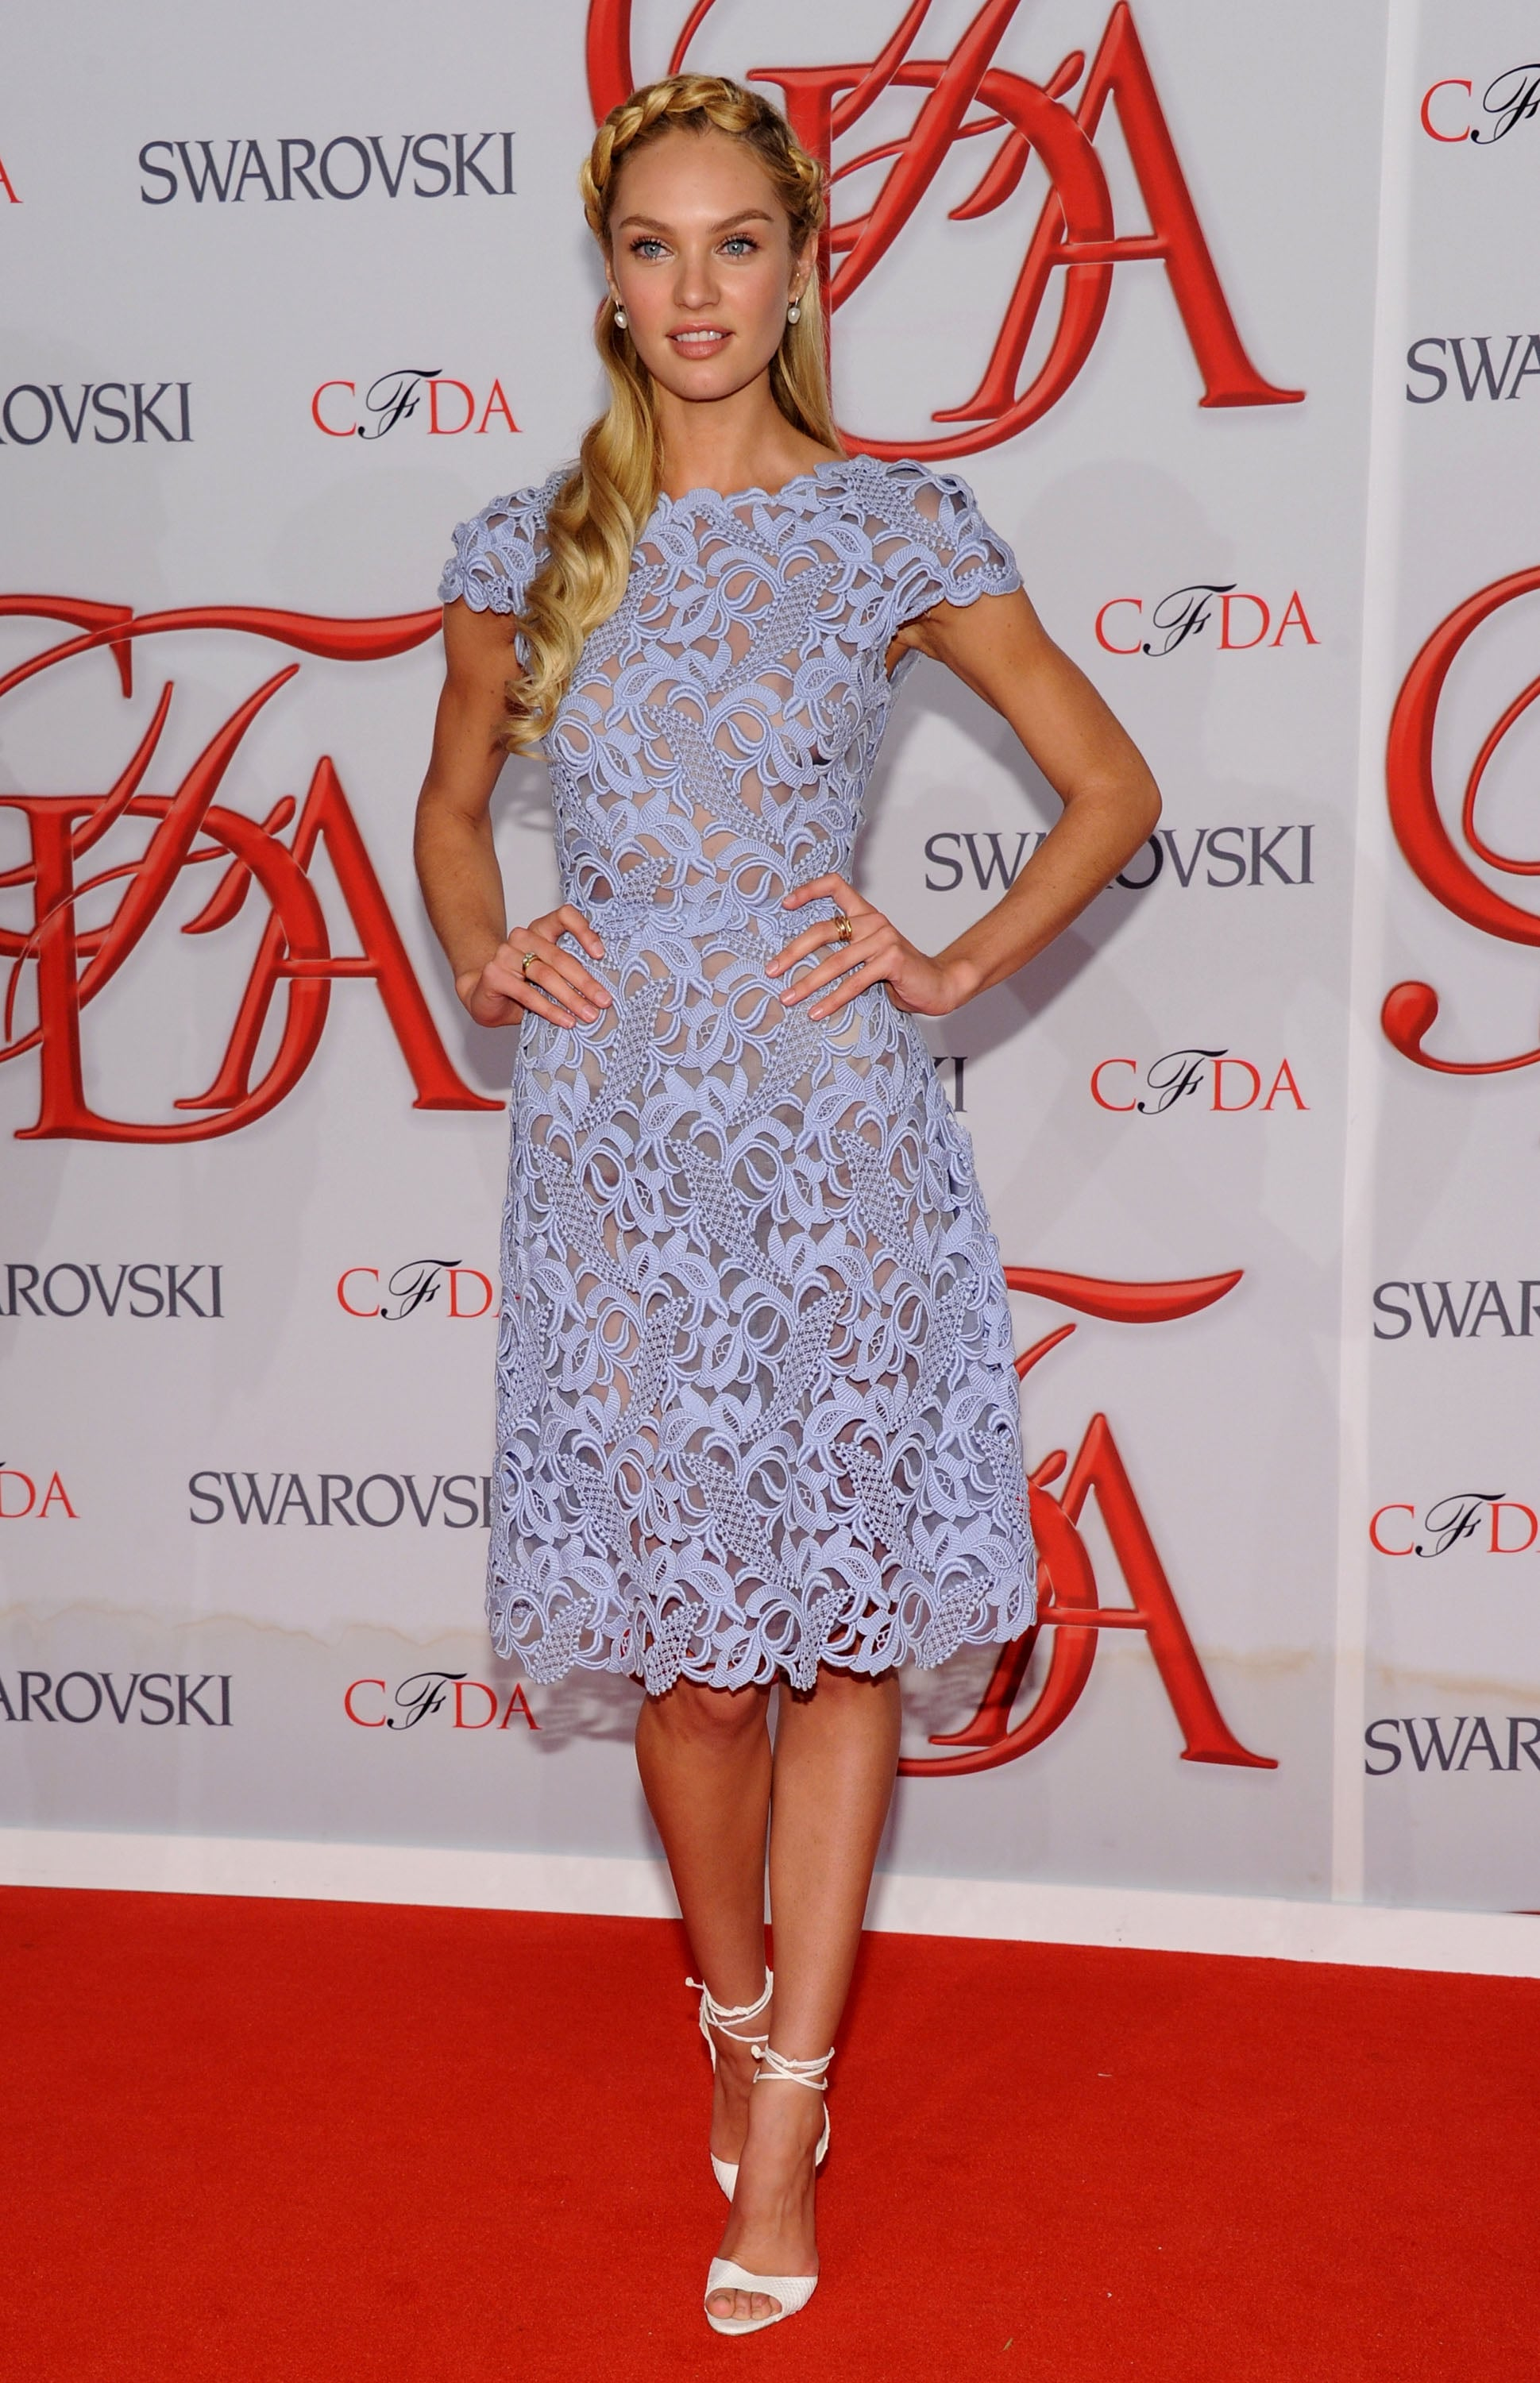 Candice Swanepoel In A Valentino Dress And Brian Atwood Shoes At The 2012 Cfda Fashion Awards Pictures Of Supermodel Candice Swanepoel On The Red Carpet Popsugar Fashion Australia Photo 13